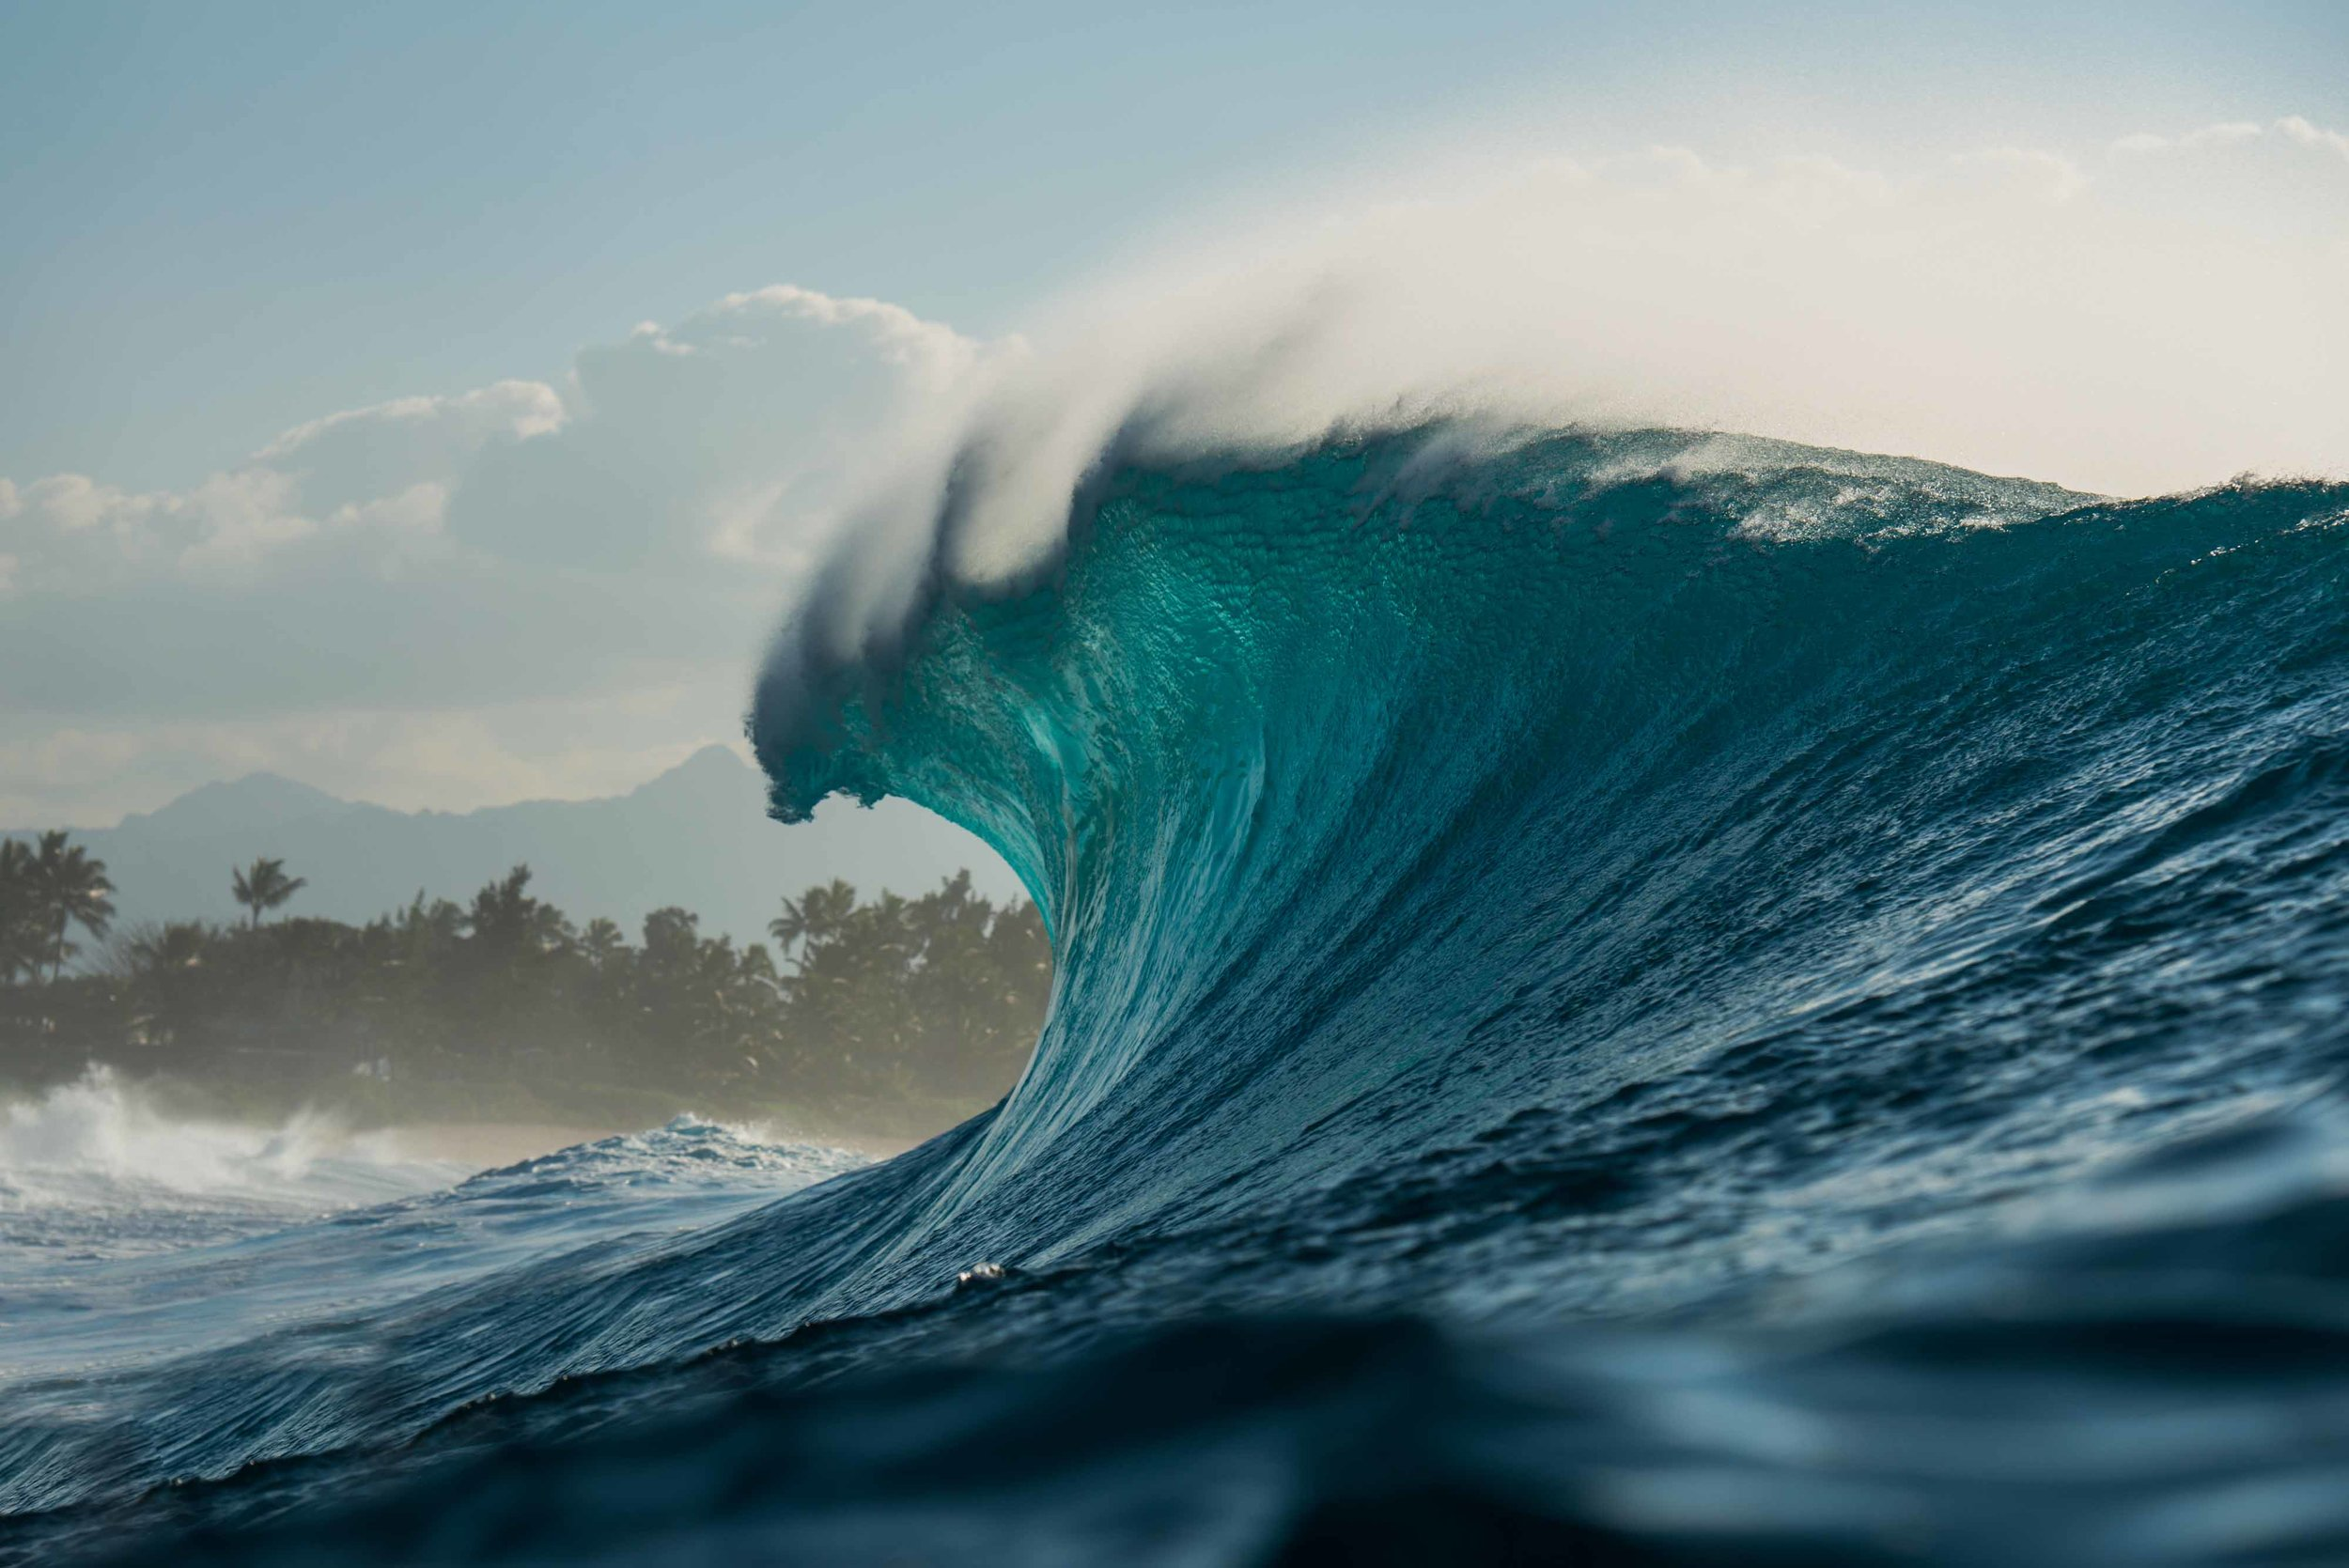 Commitment over fear - Pipeline, Hawaii